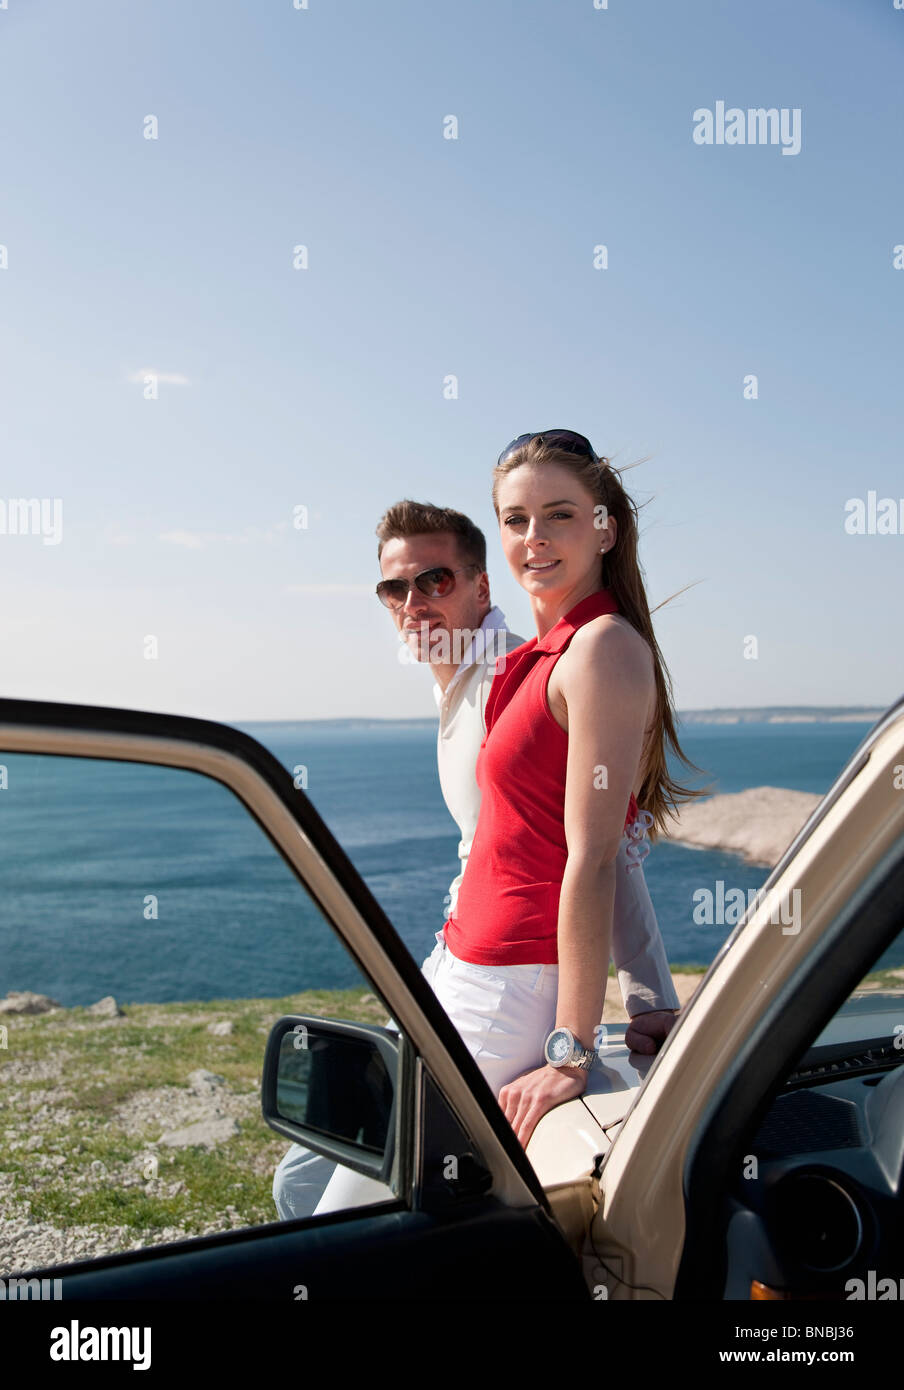 Couple with oldtimer by sea - Stock Image